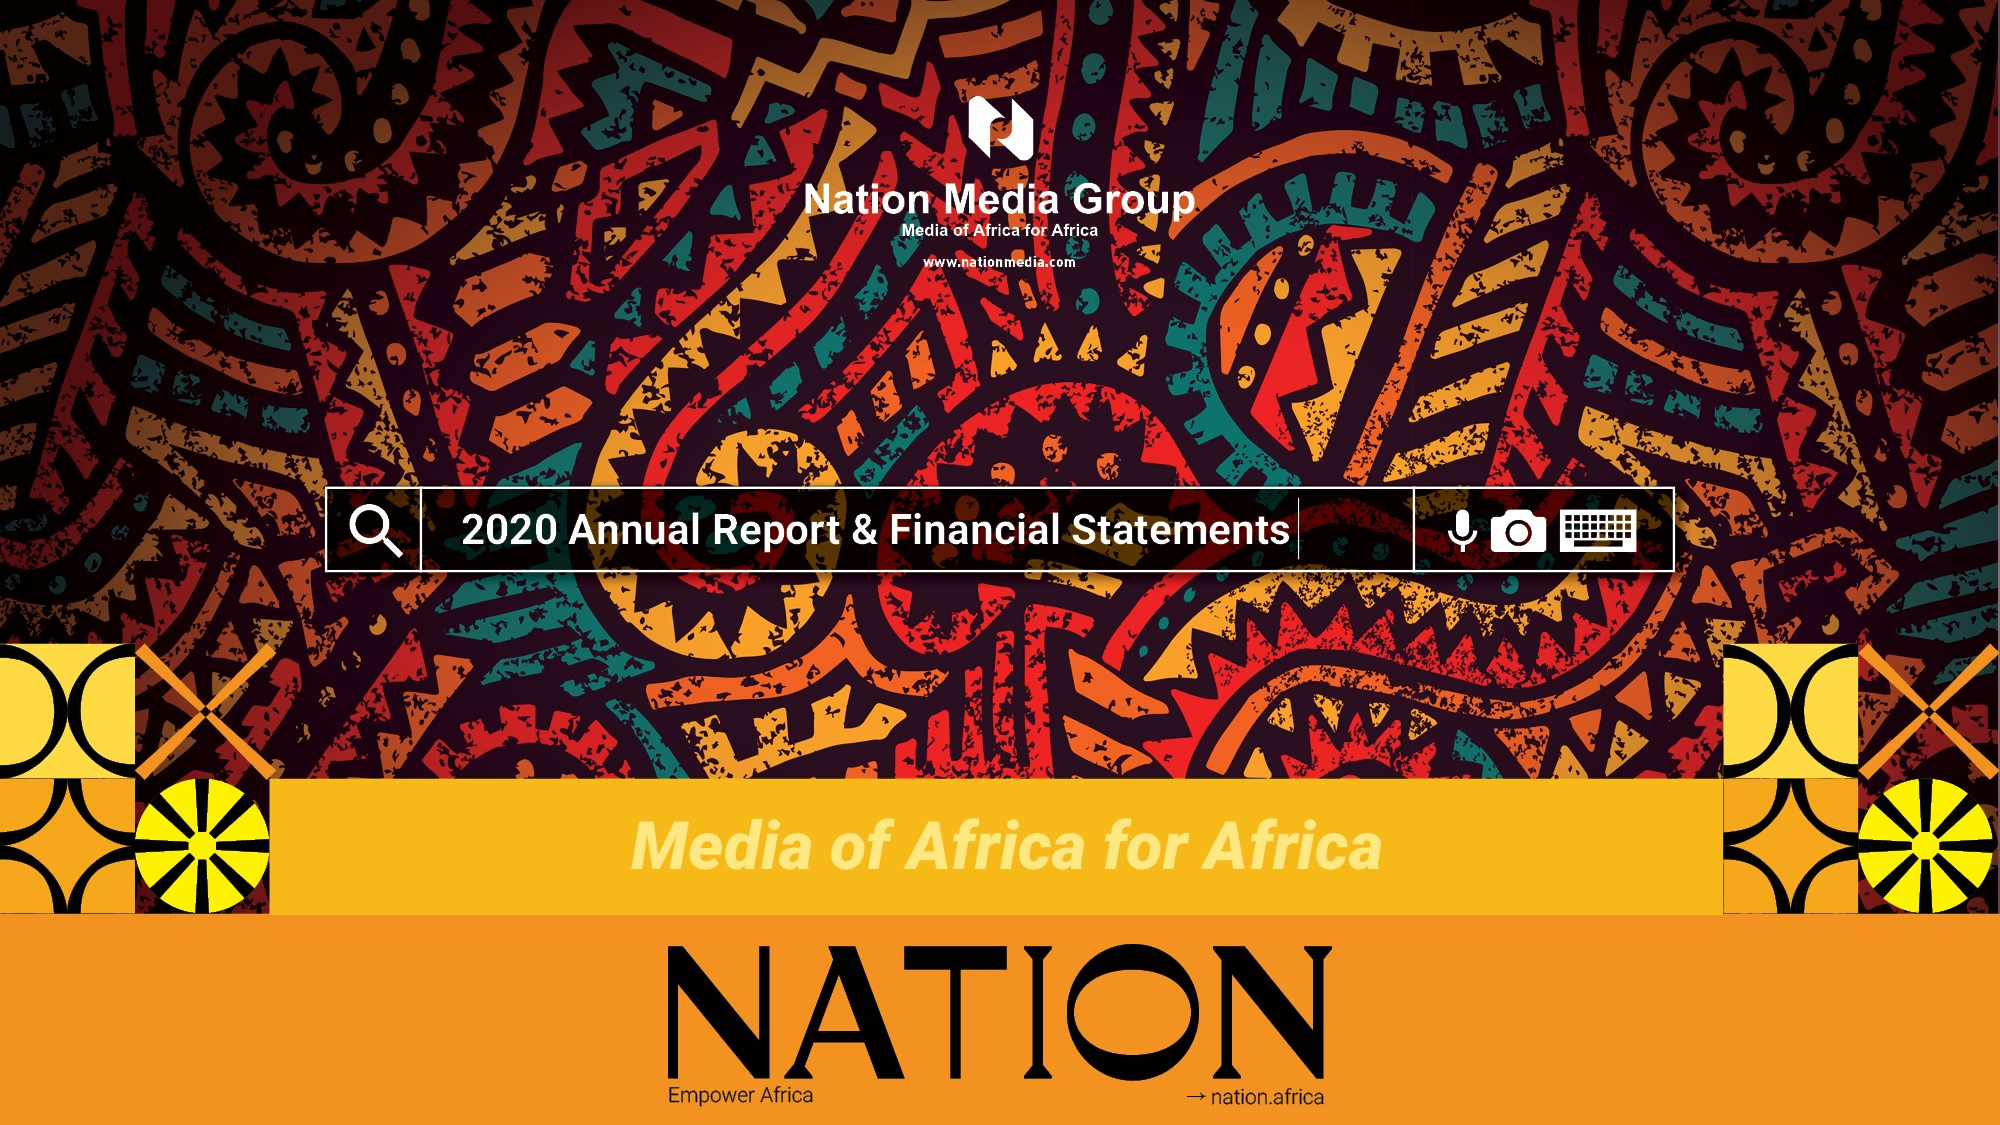 NMG 2020 Annual Report and Financial Statements